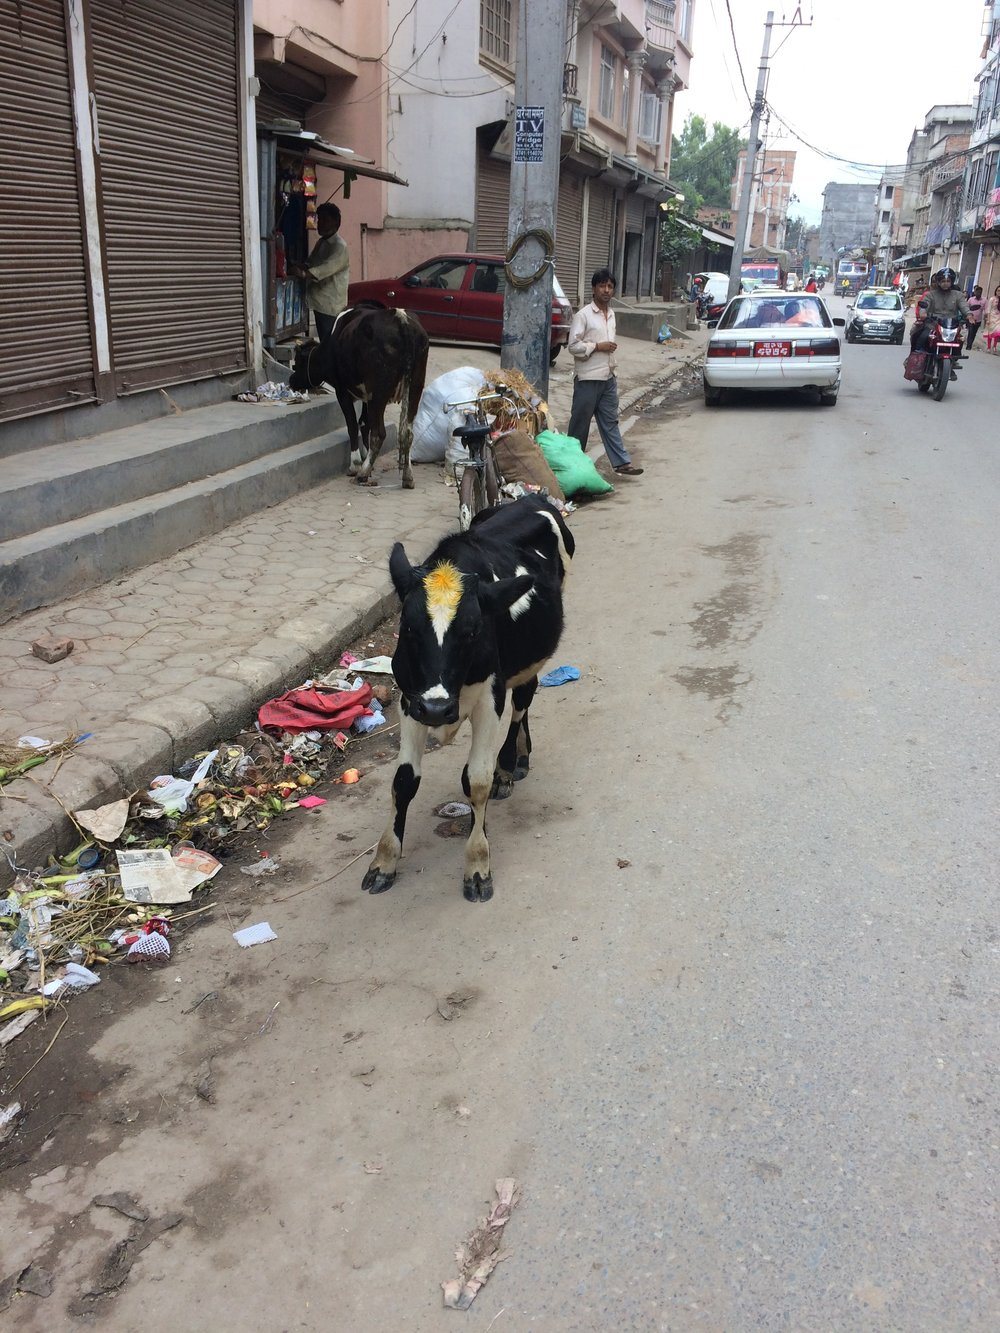 A street cow got a tikka blessing from someone on the last day of Dashain